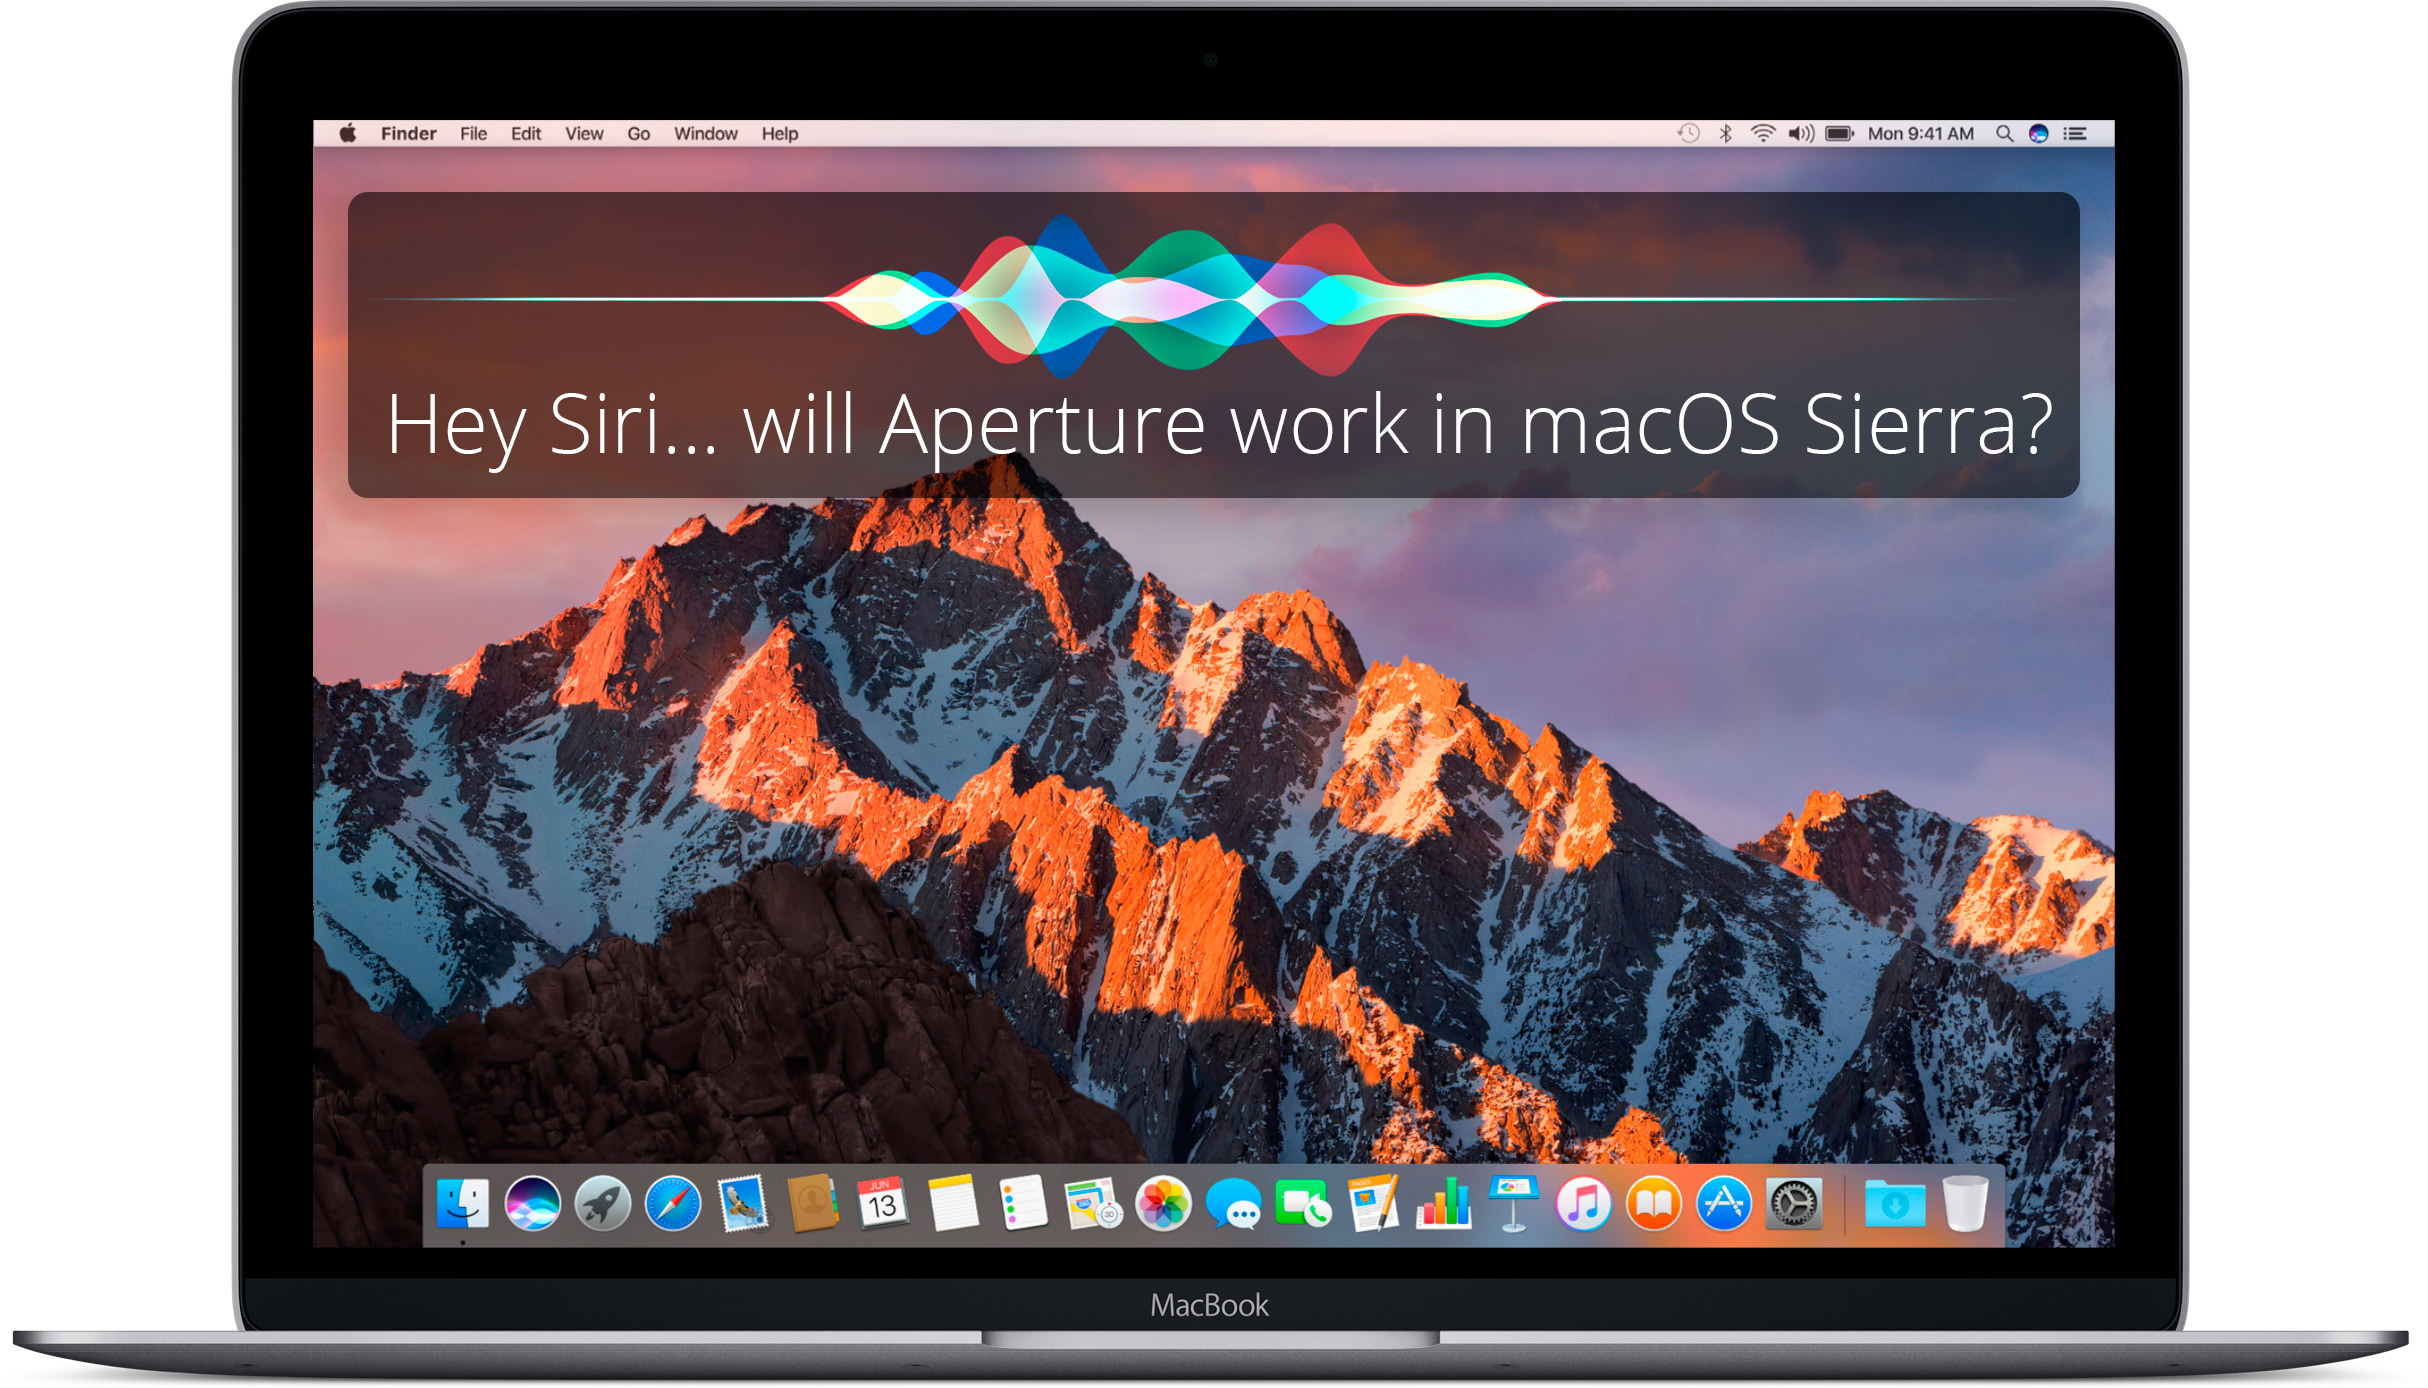 Hey Siri… will Aperture work in macOS Sierra?